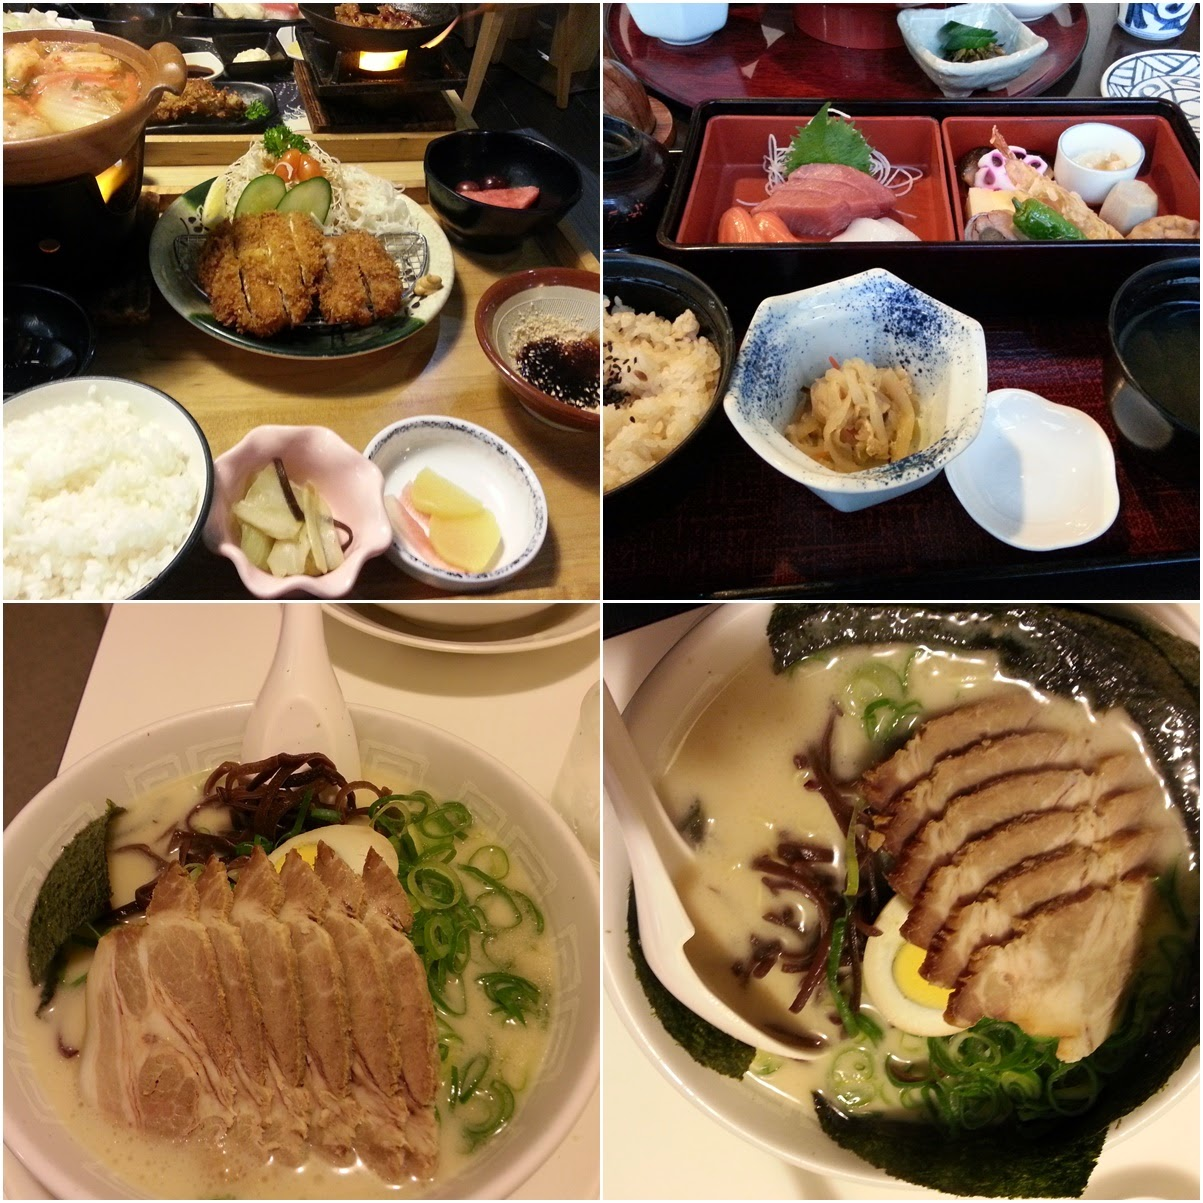 The portion of Japanese ramen and set meal are generous and the prices are reasonable too in Japan